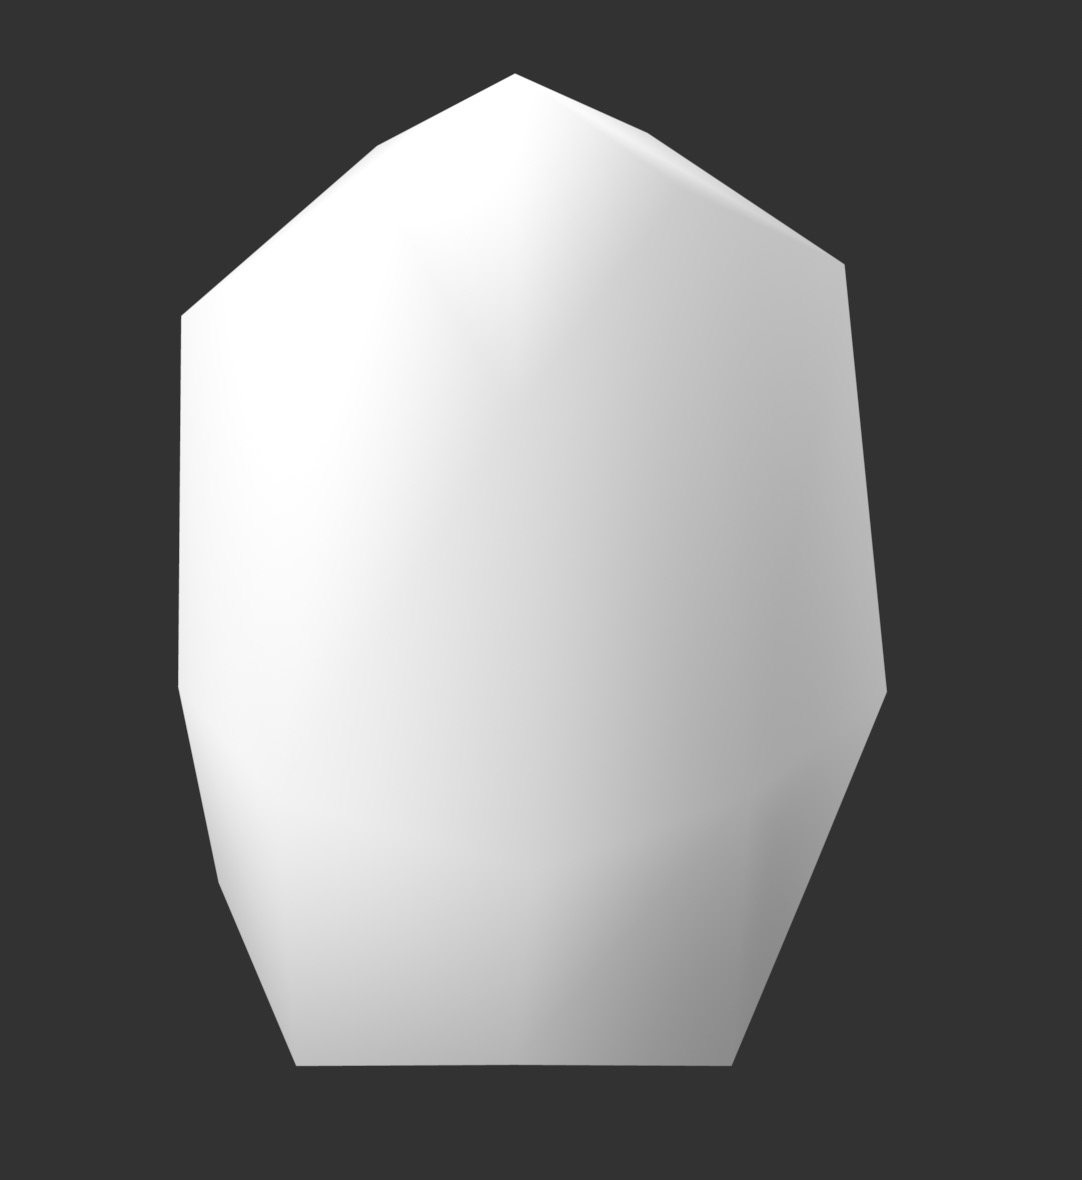 white 3D form on grey background